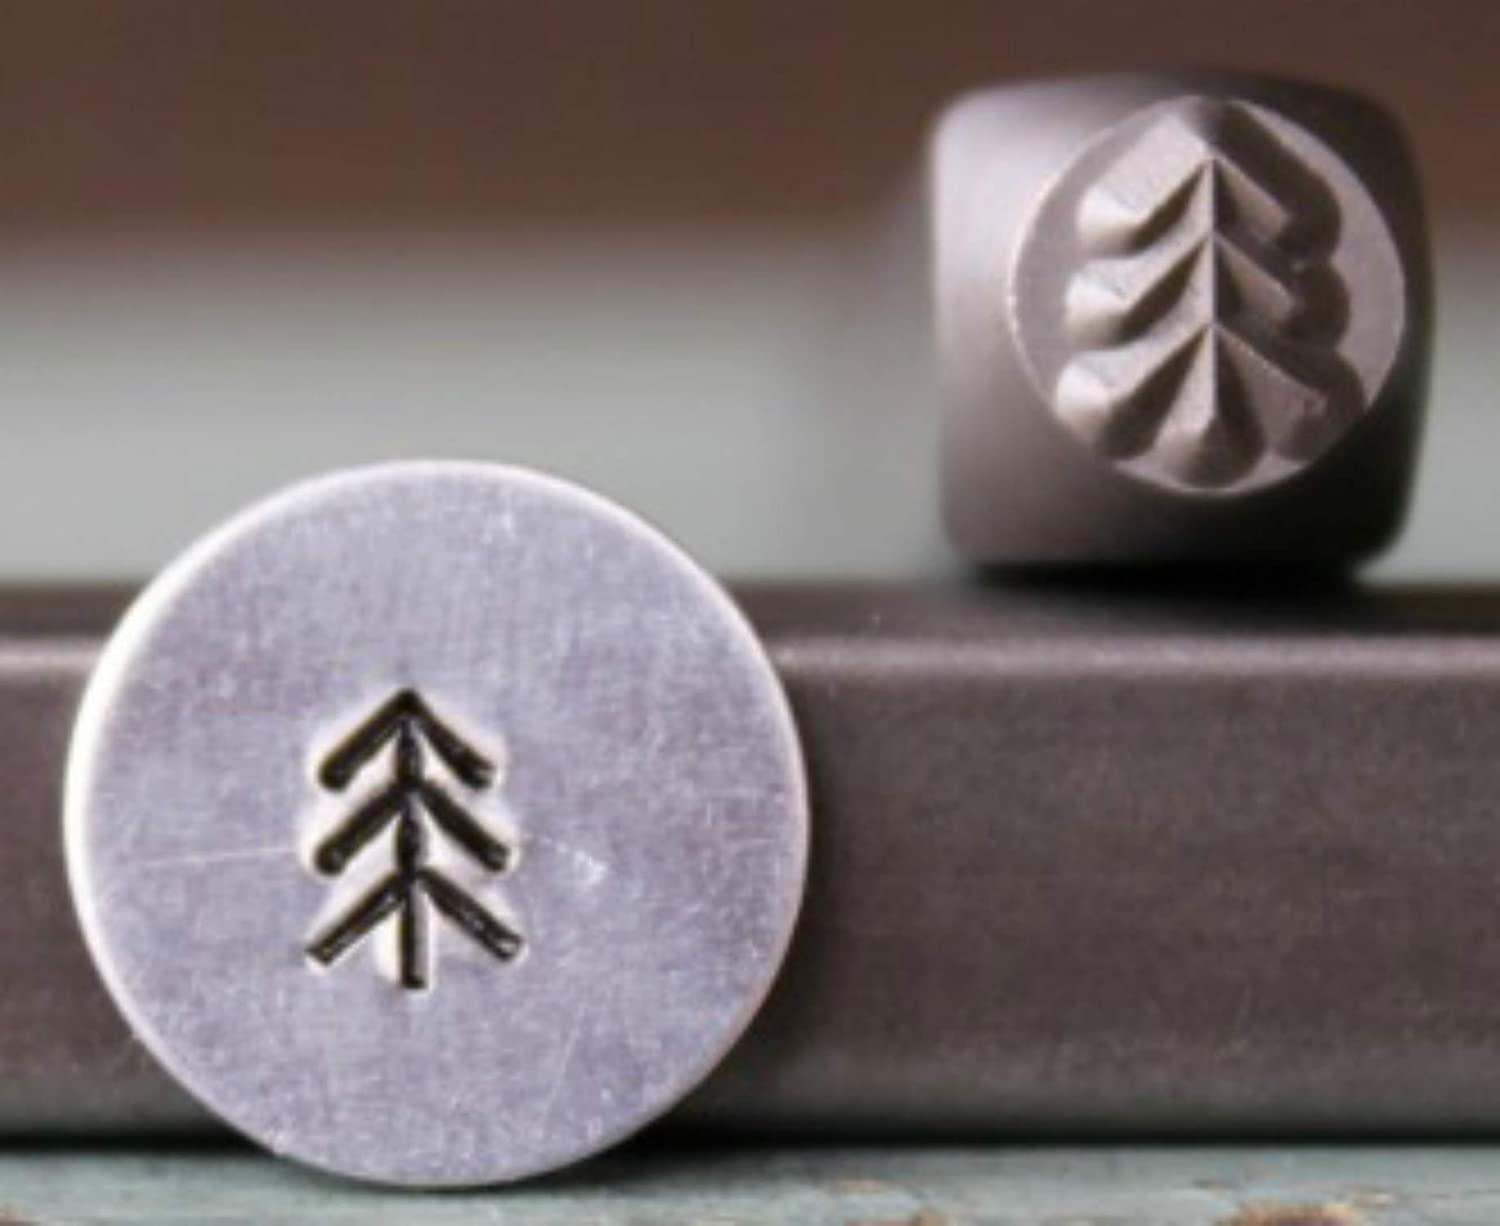 Supply Guy CH-278 Brand New 5mm Simple Pine Tree 1 Metal Punch Design Stamp